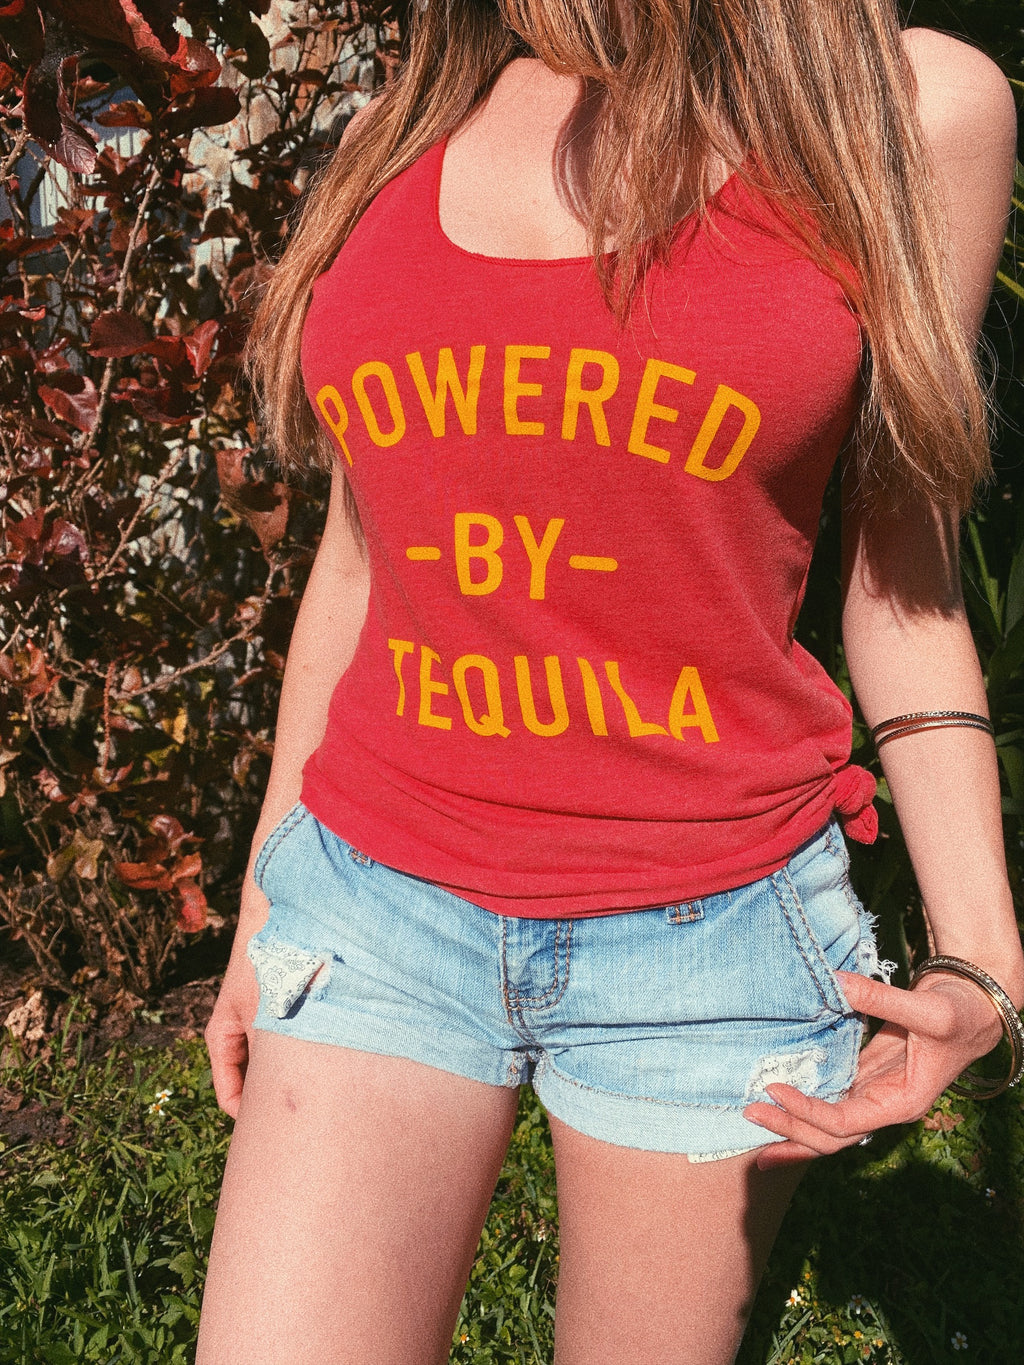 Fiesta hard in this funny women's tequila shirt! Perfect Cinco De Mayo shirt or your bachelorette party! This Powered By Tequila shirt is perfect to show your love for tequila!